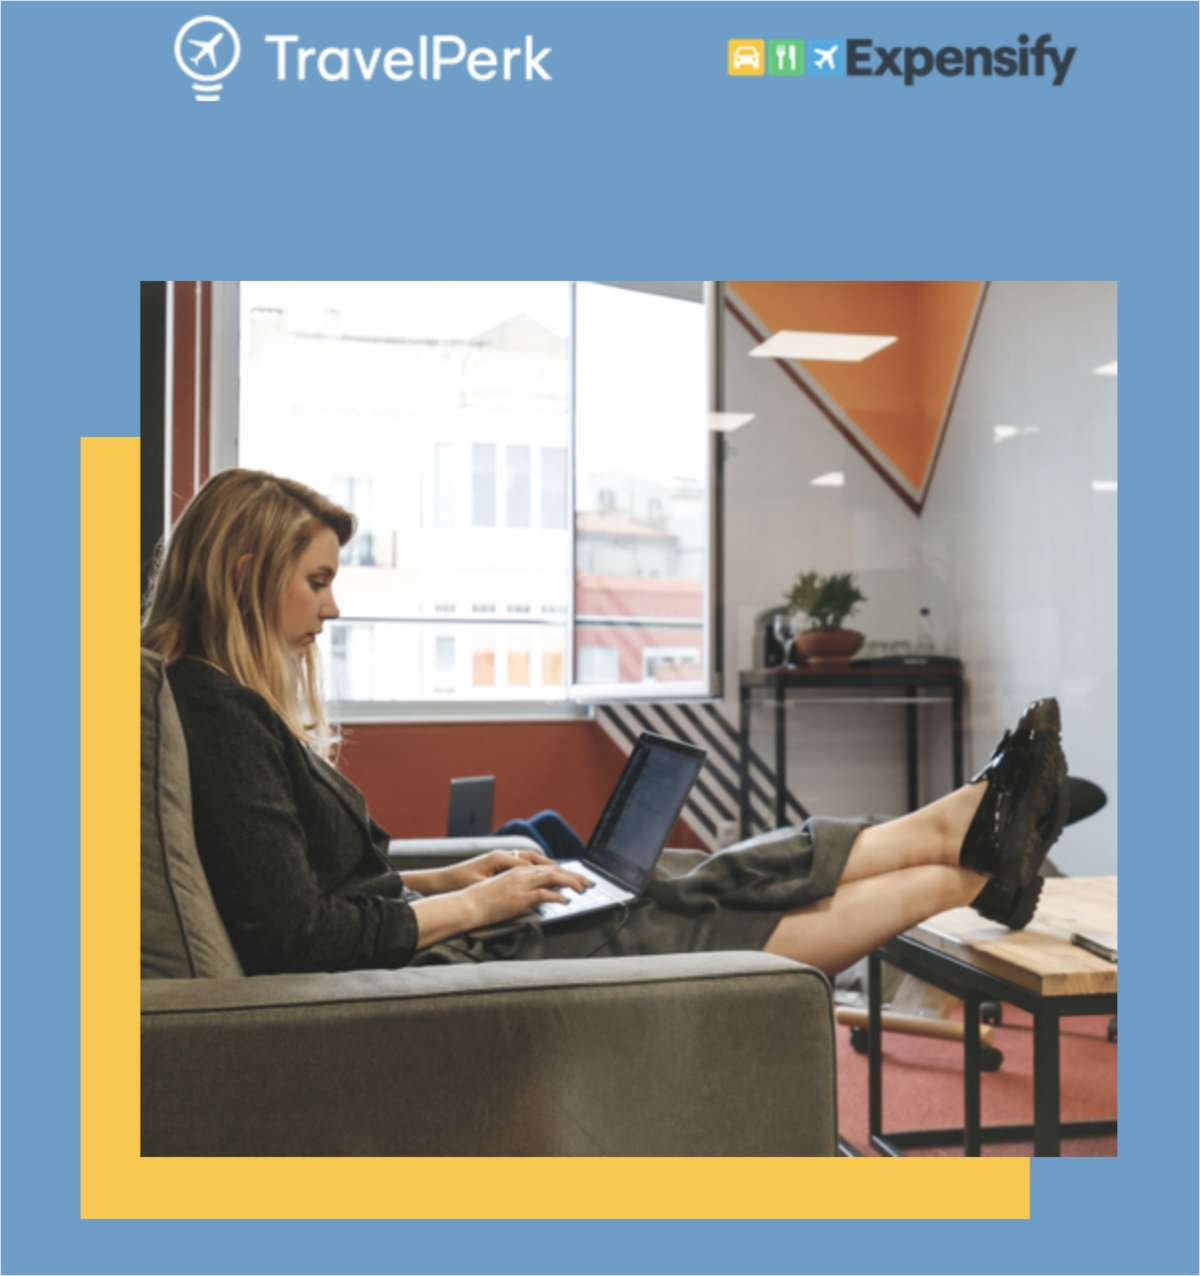 How to Choose the Best Travel and Expense Solution for Your Business